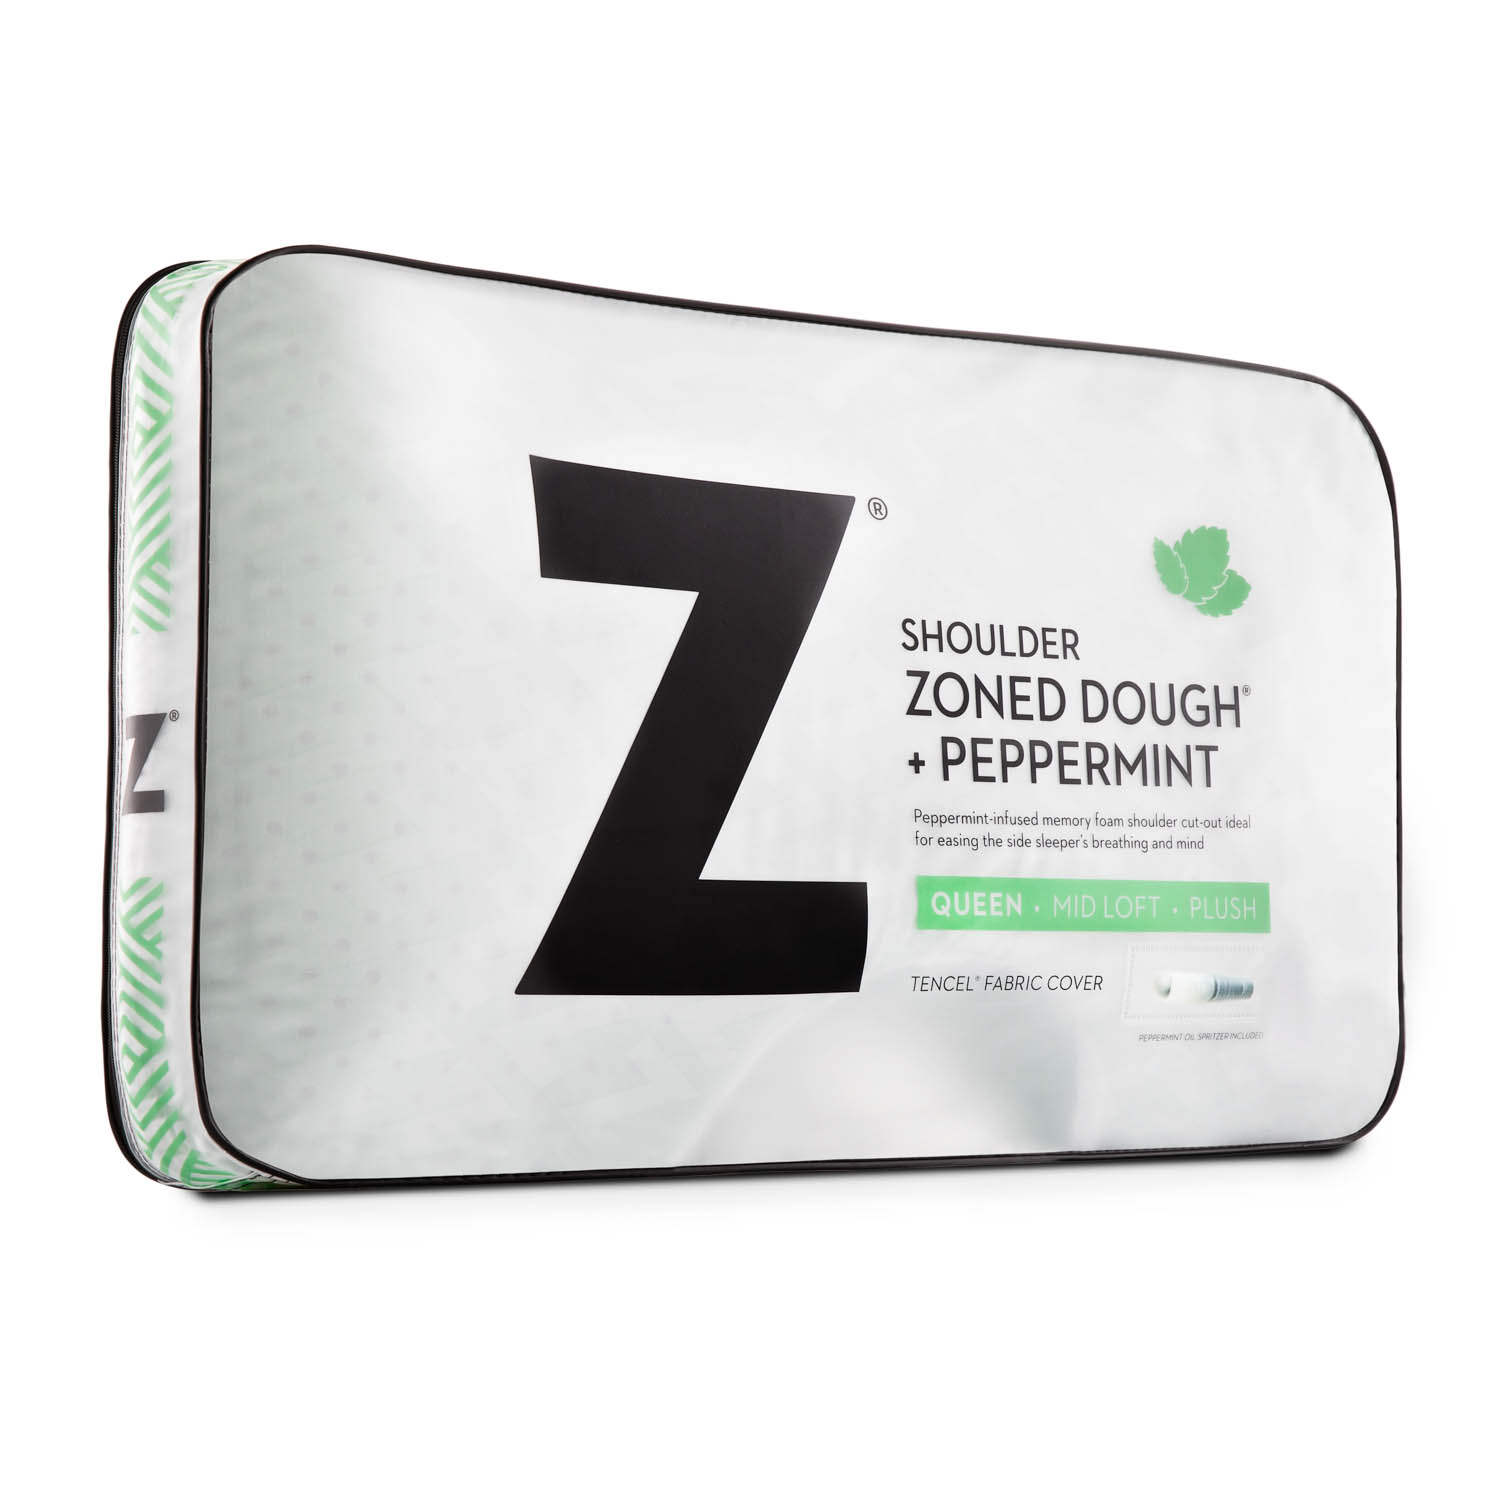 Almohada Z Shoulder Cutout Zoned Peppermint